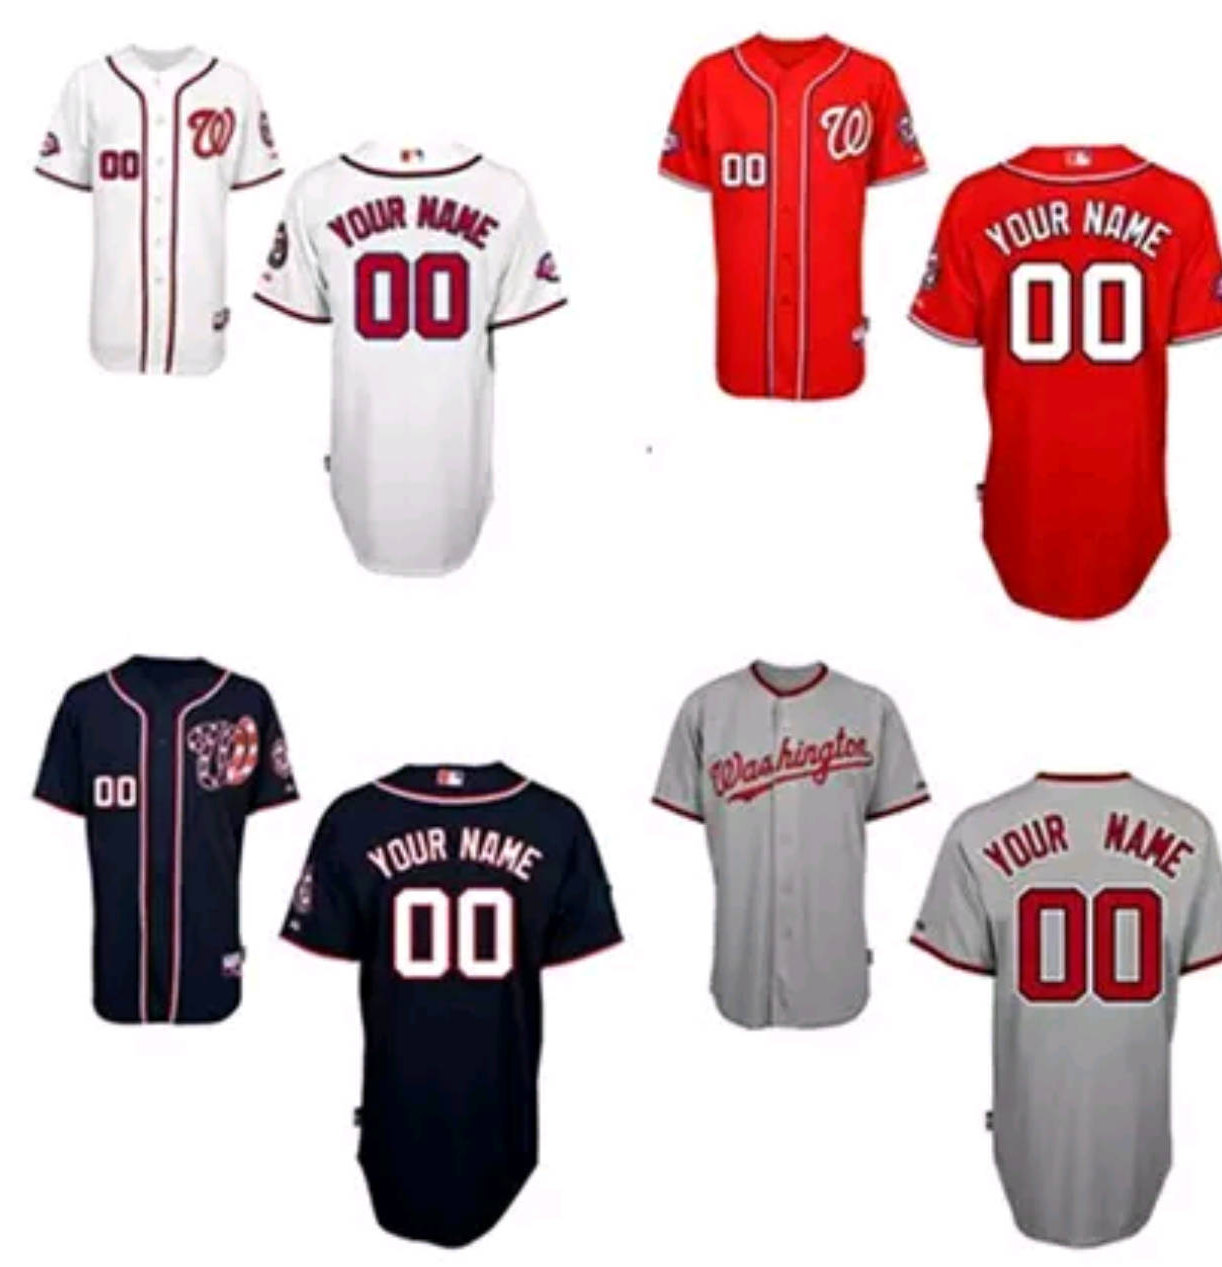 watch 994cd 8216c Washington Nationals Personalized Mens/Women/Youth Jersey S-XXXL Available  Plain or Customized Any Color/Name/Number, Including Yours